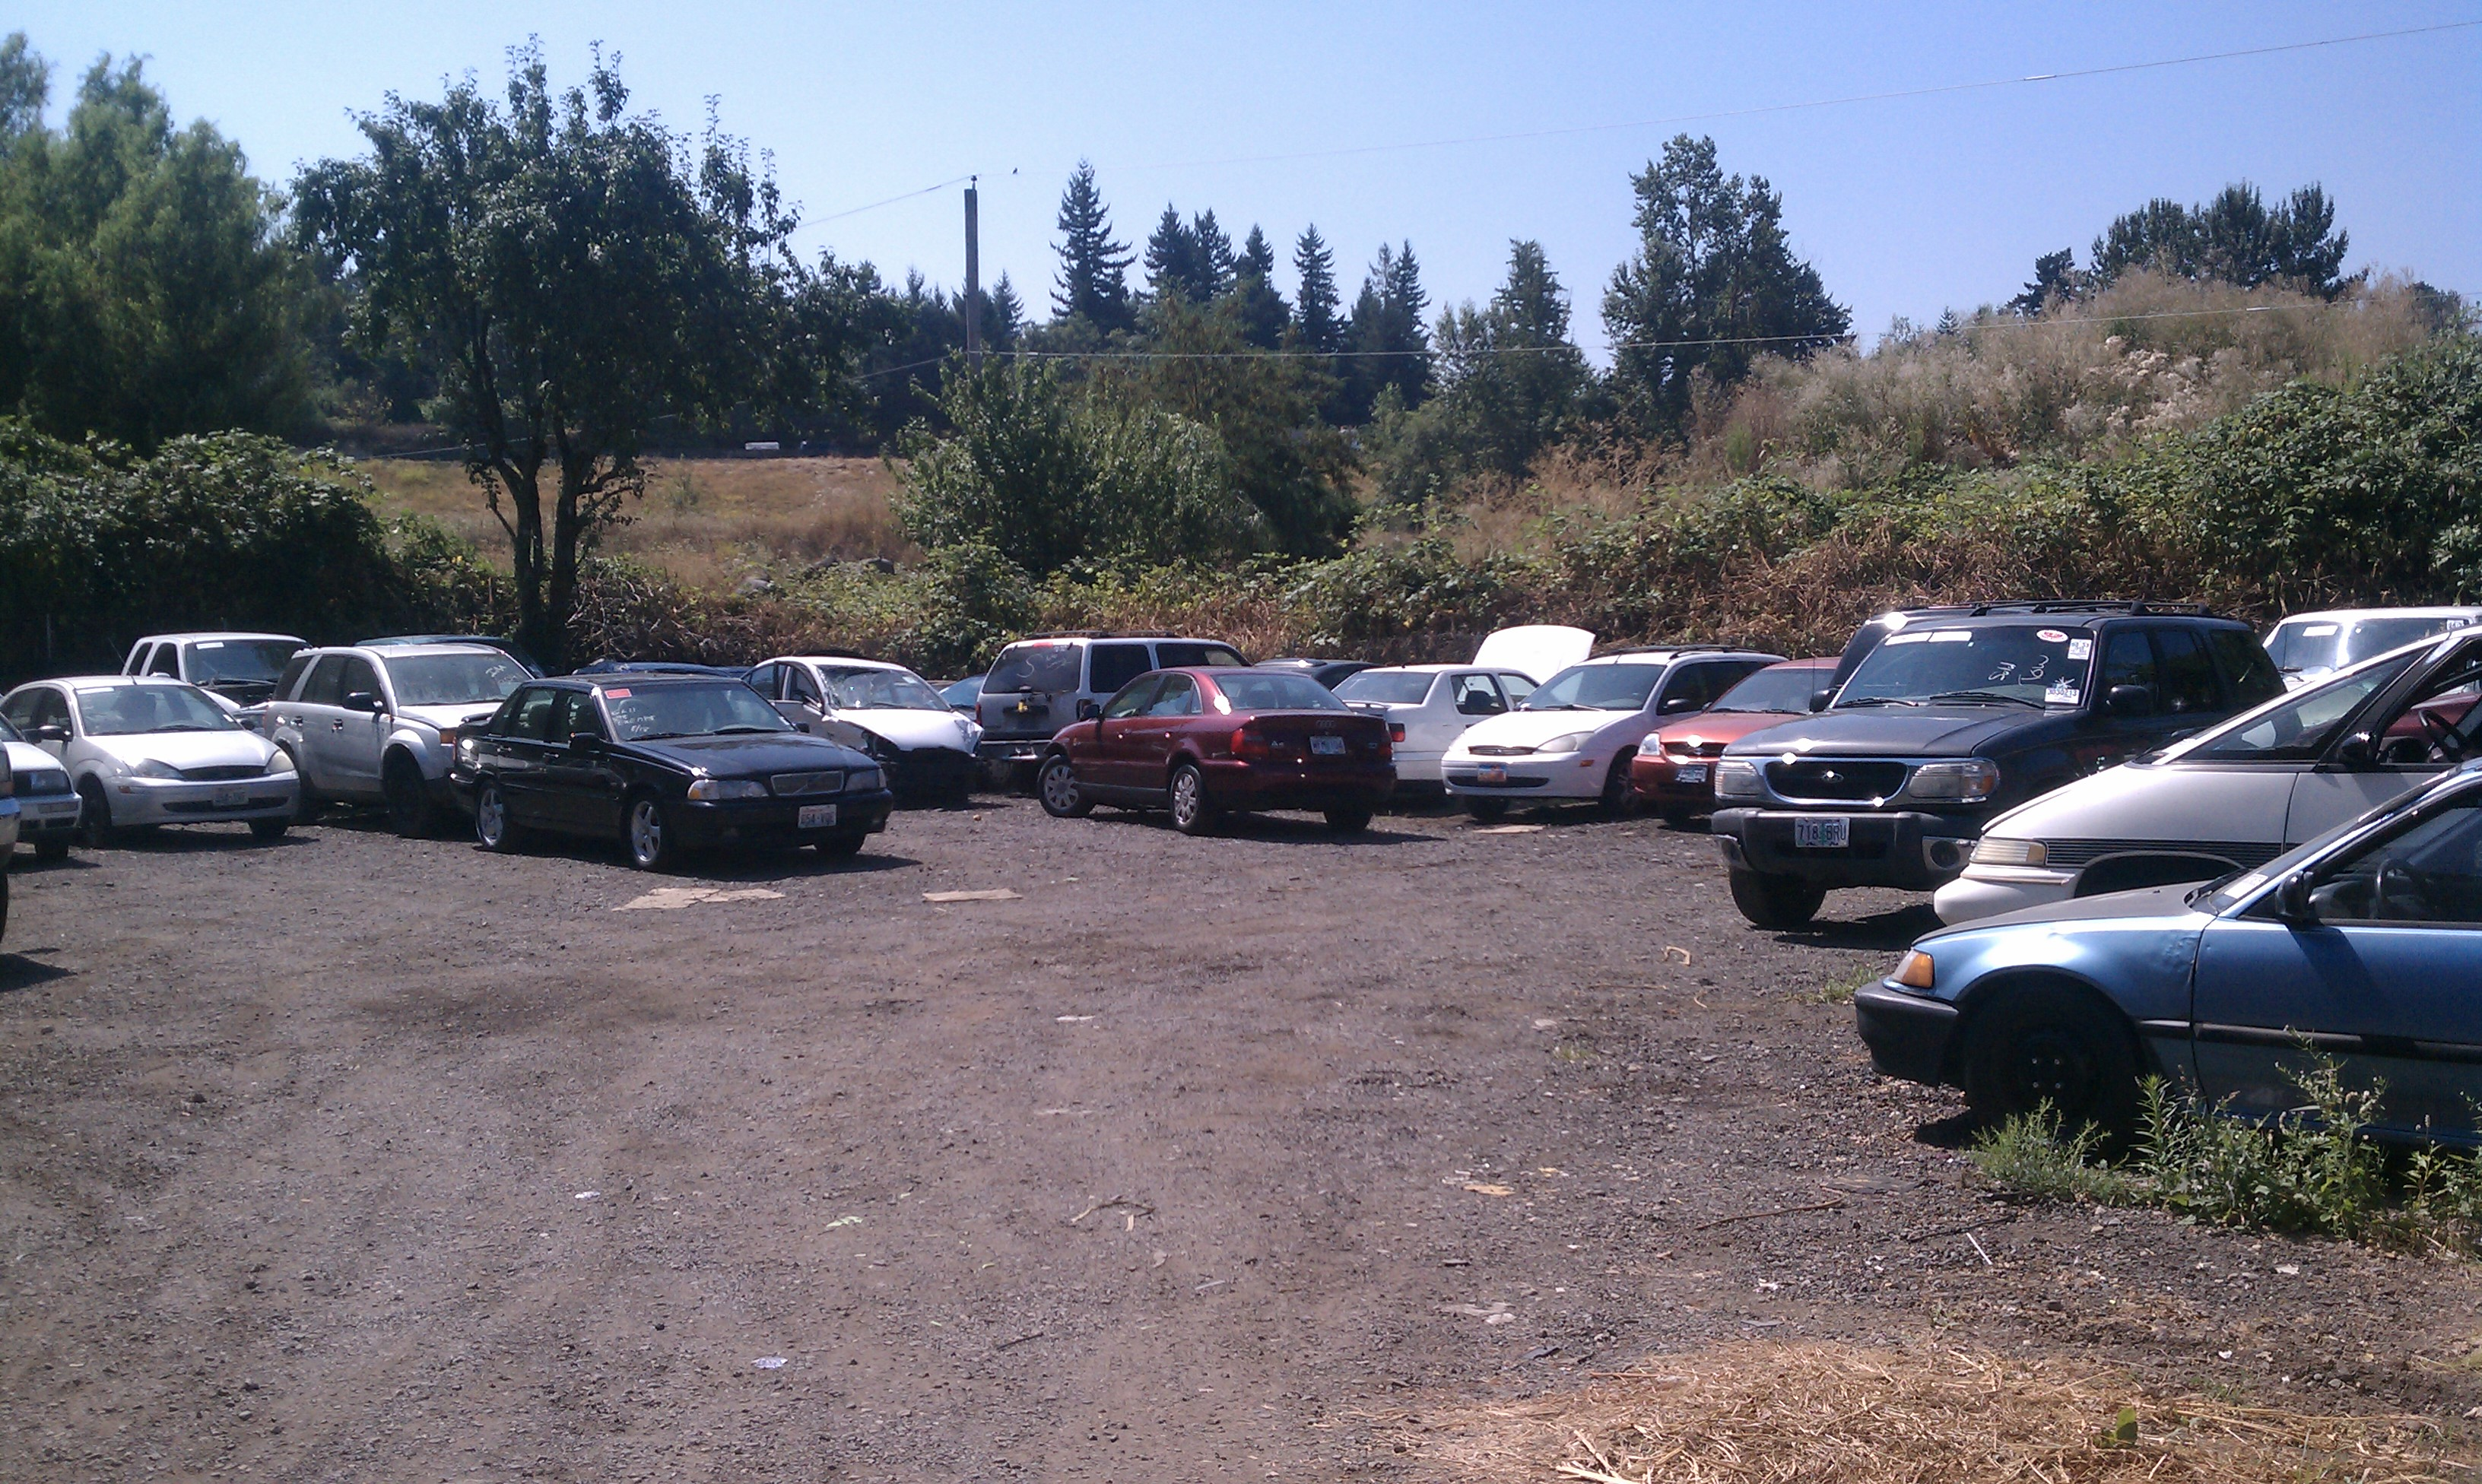 Sell My Car Portland - Most Cash For Junk Cars In Portland